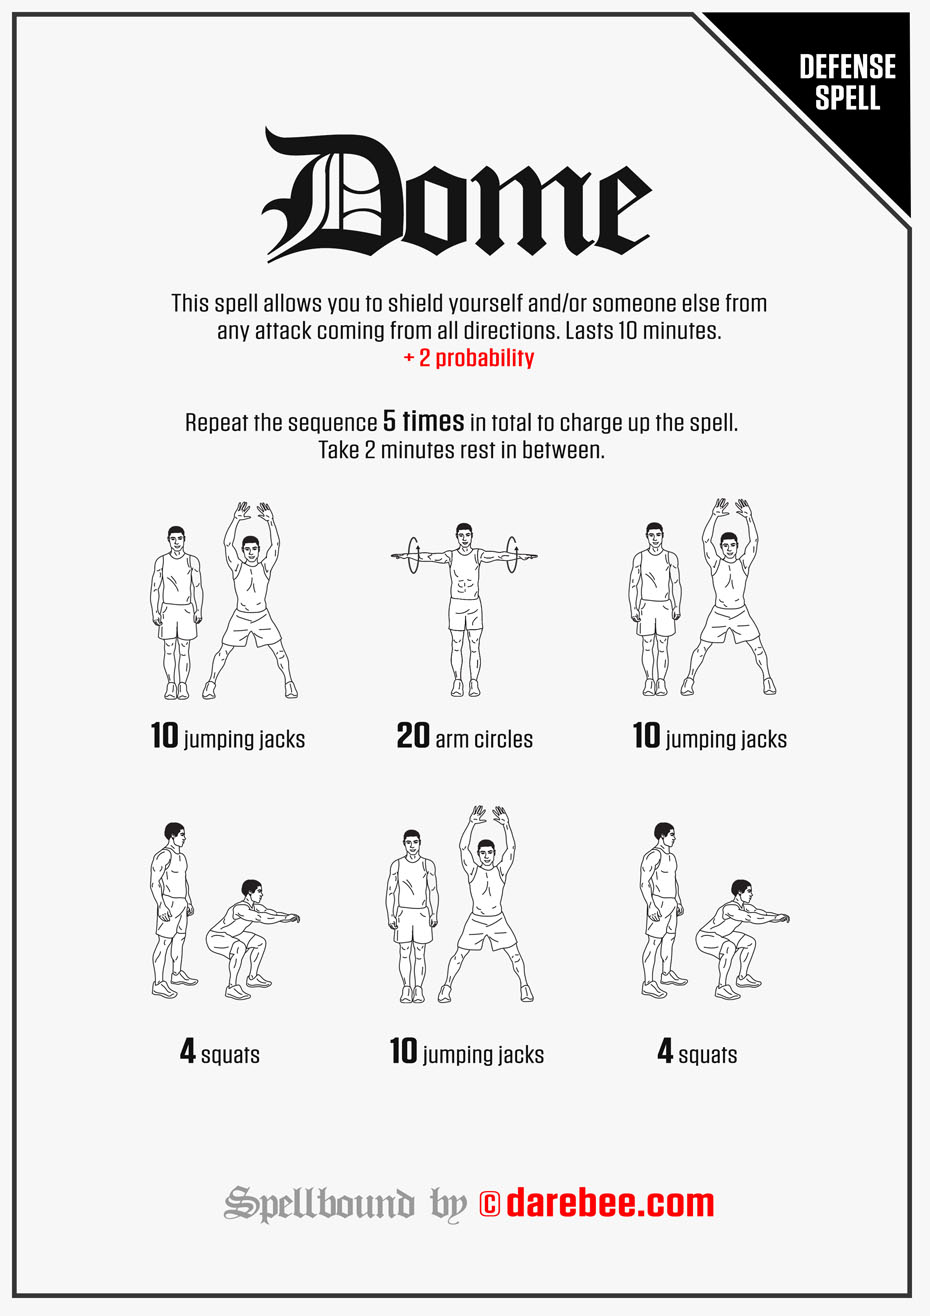 Spellbound - 30-Day Fantasy Fitness Adventure by DAREBEE